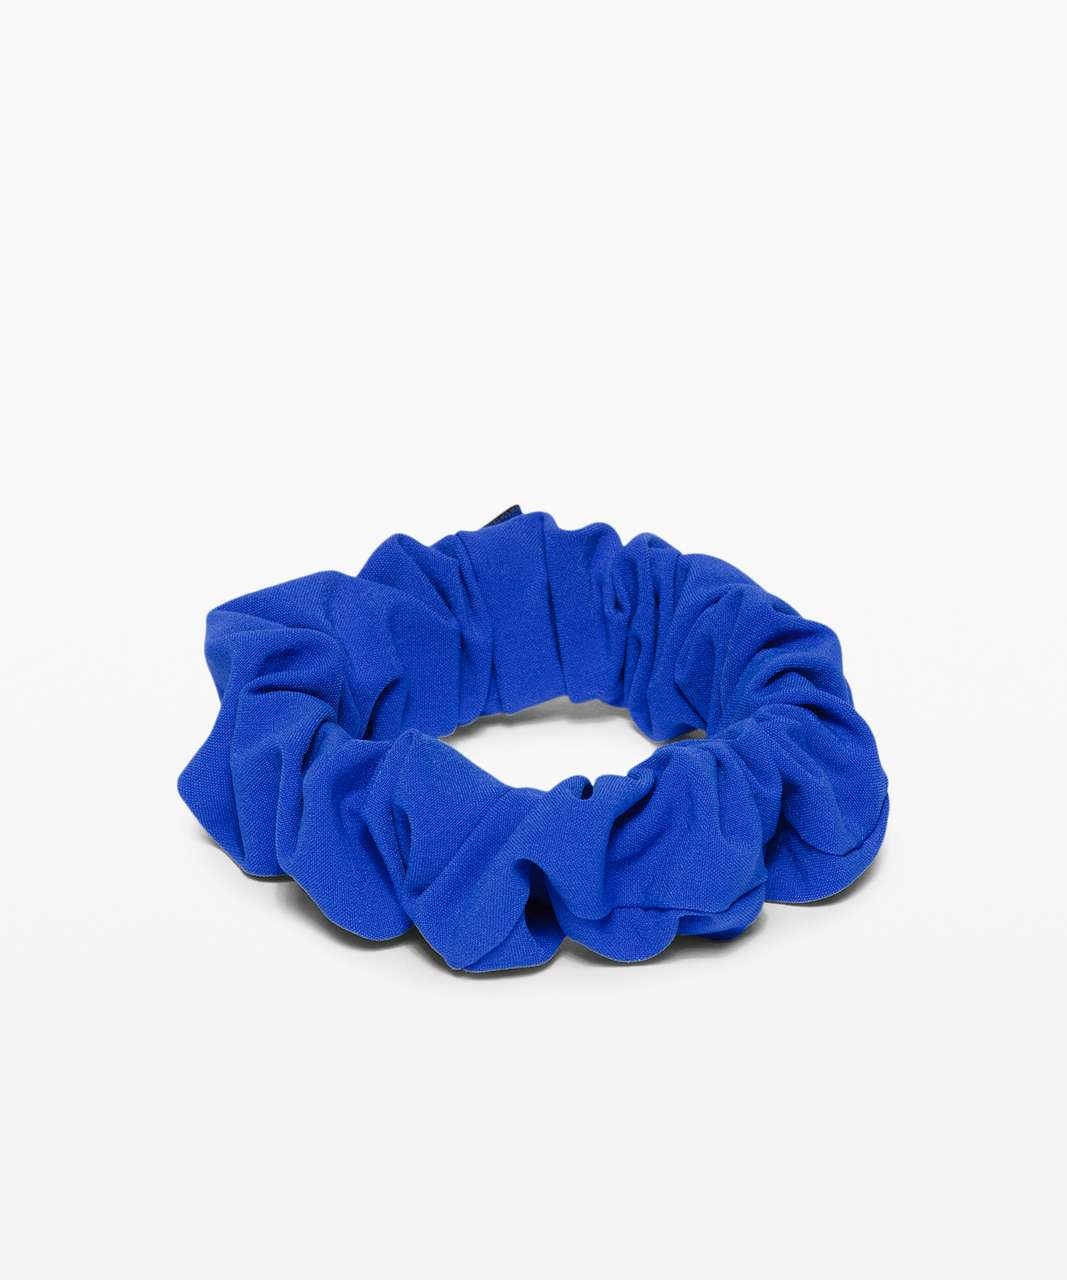 Lululemon Uplifting Scrunchie - Cerulean Blue